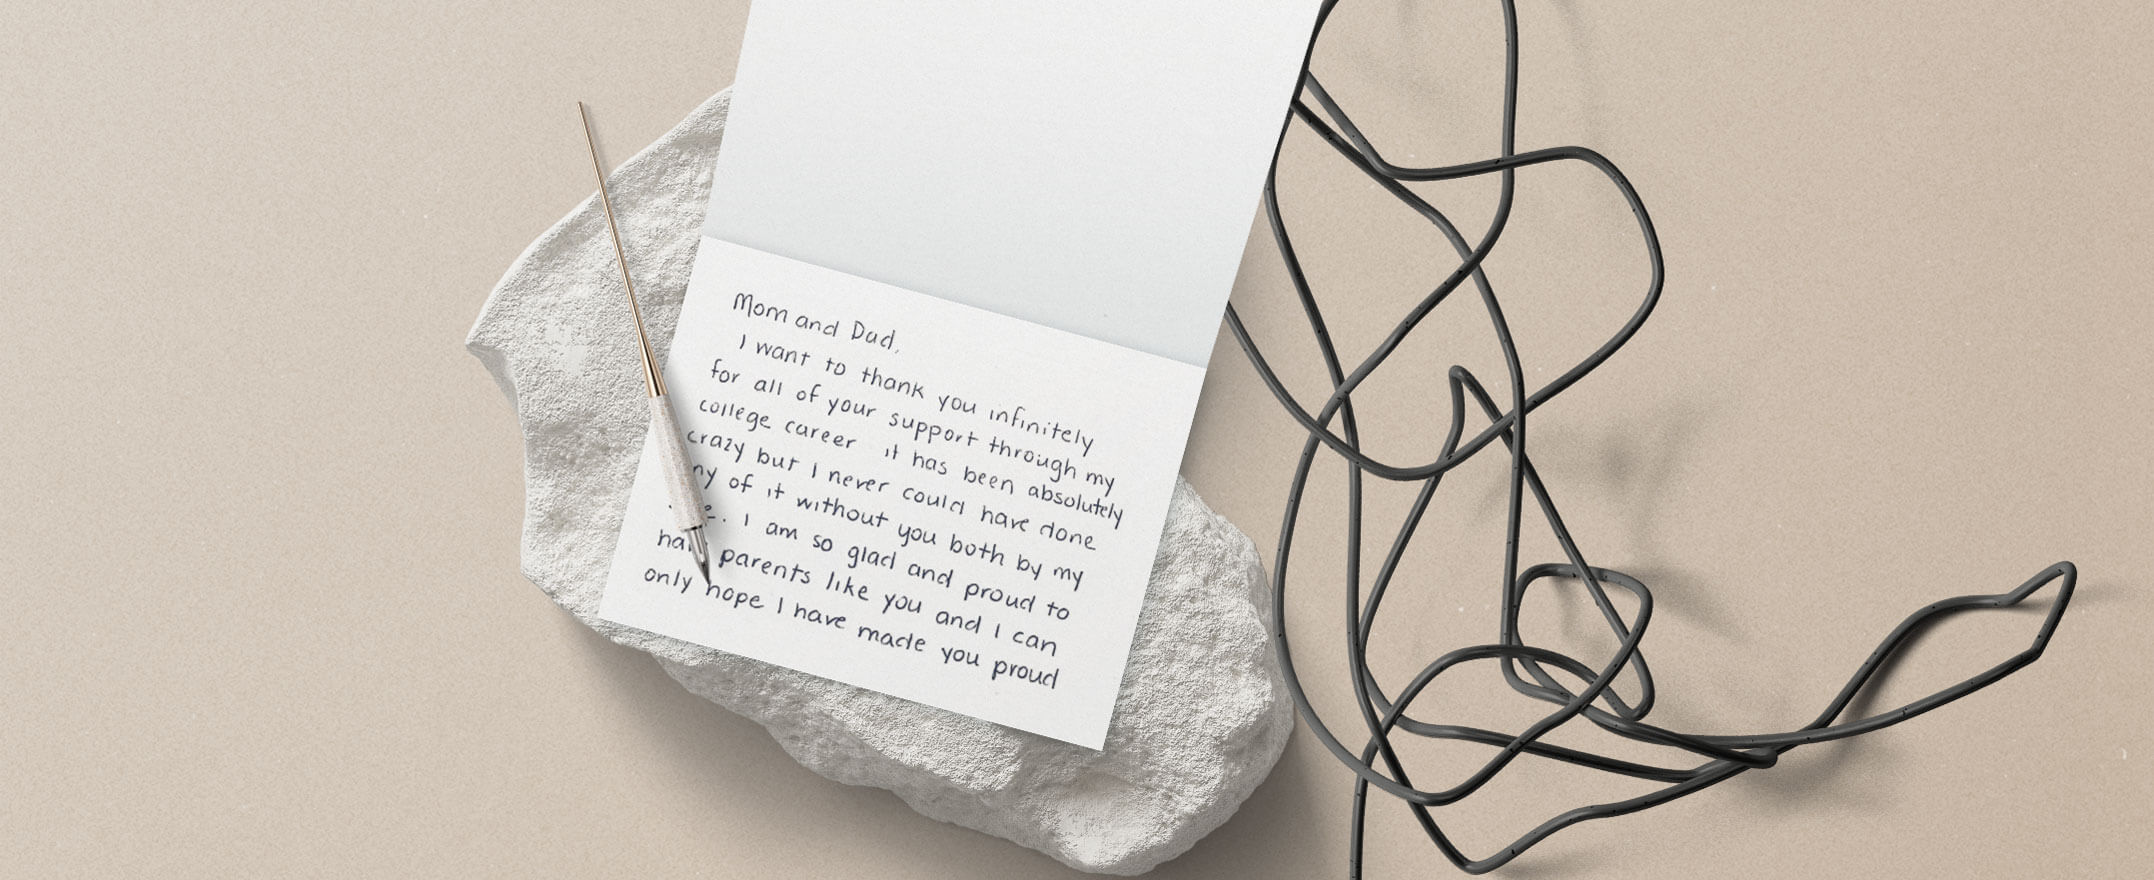 An open greeting card with a heartfelt message written on it. Placed on a rock, with a pen next to it.